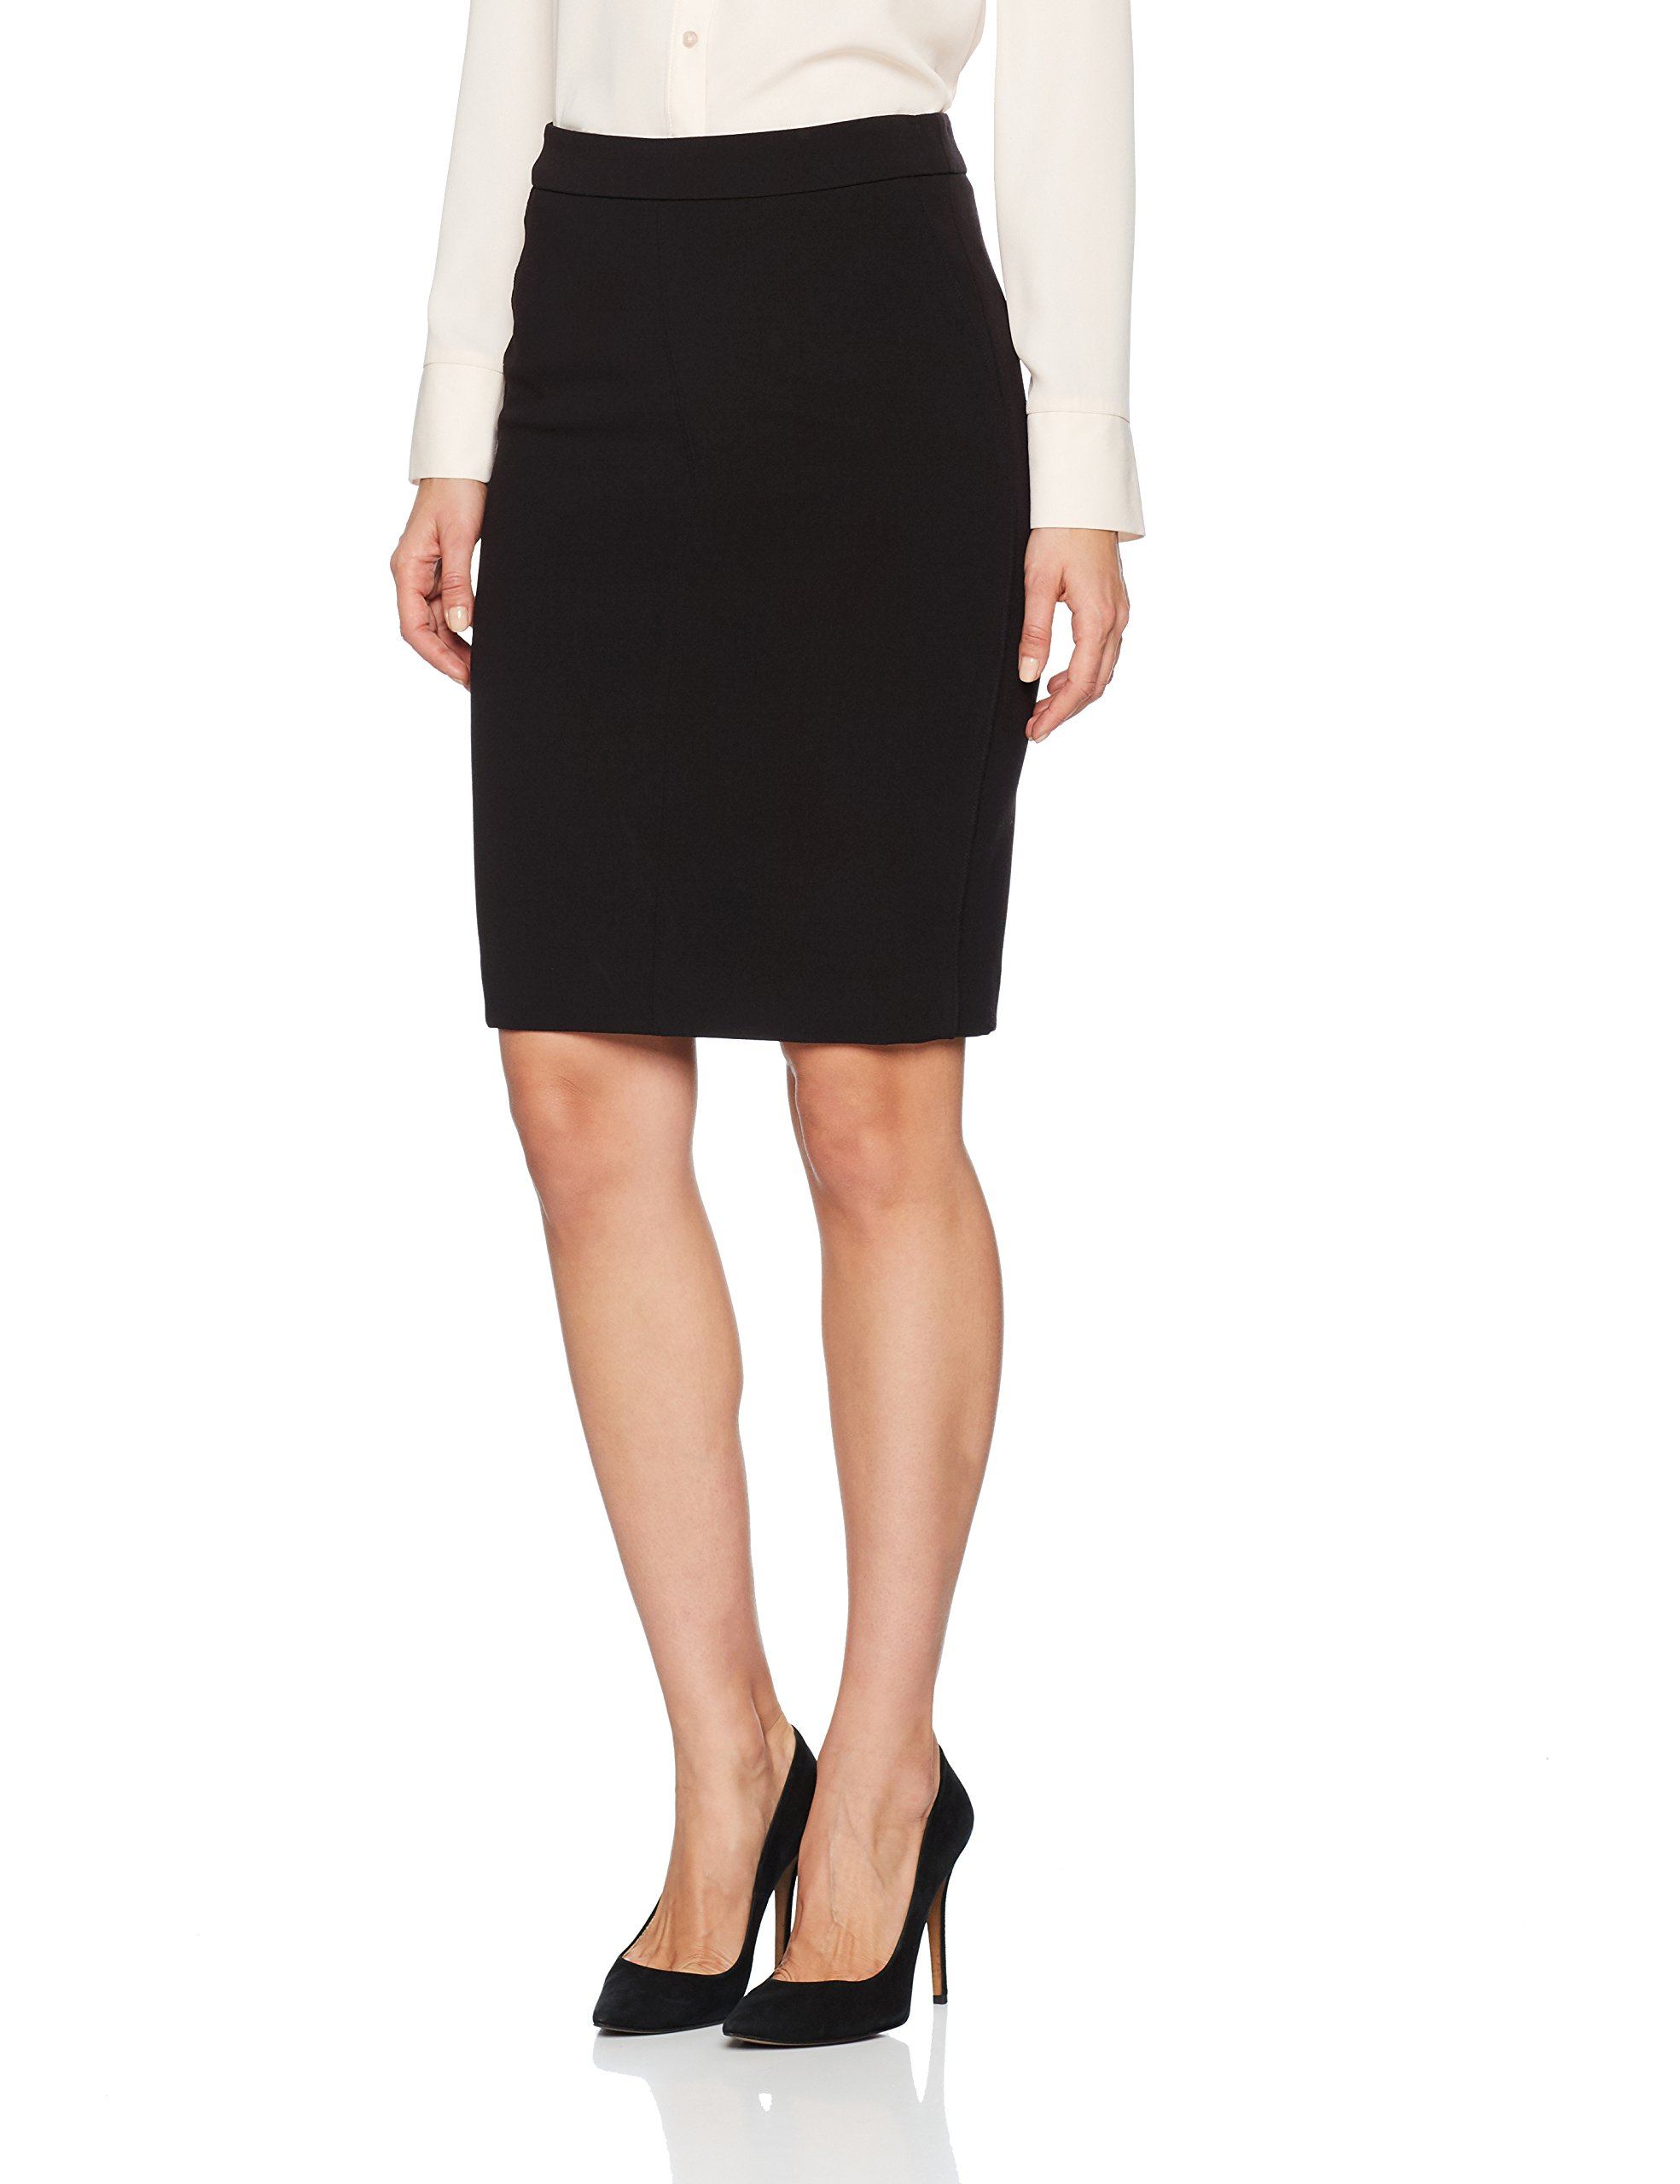 Fabricant38Femme 018eo1d002 Collection 00140taille Esprit JupeNoirblack sdCthrQx